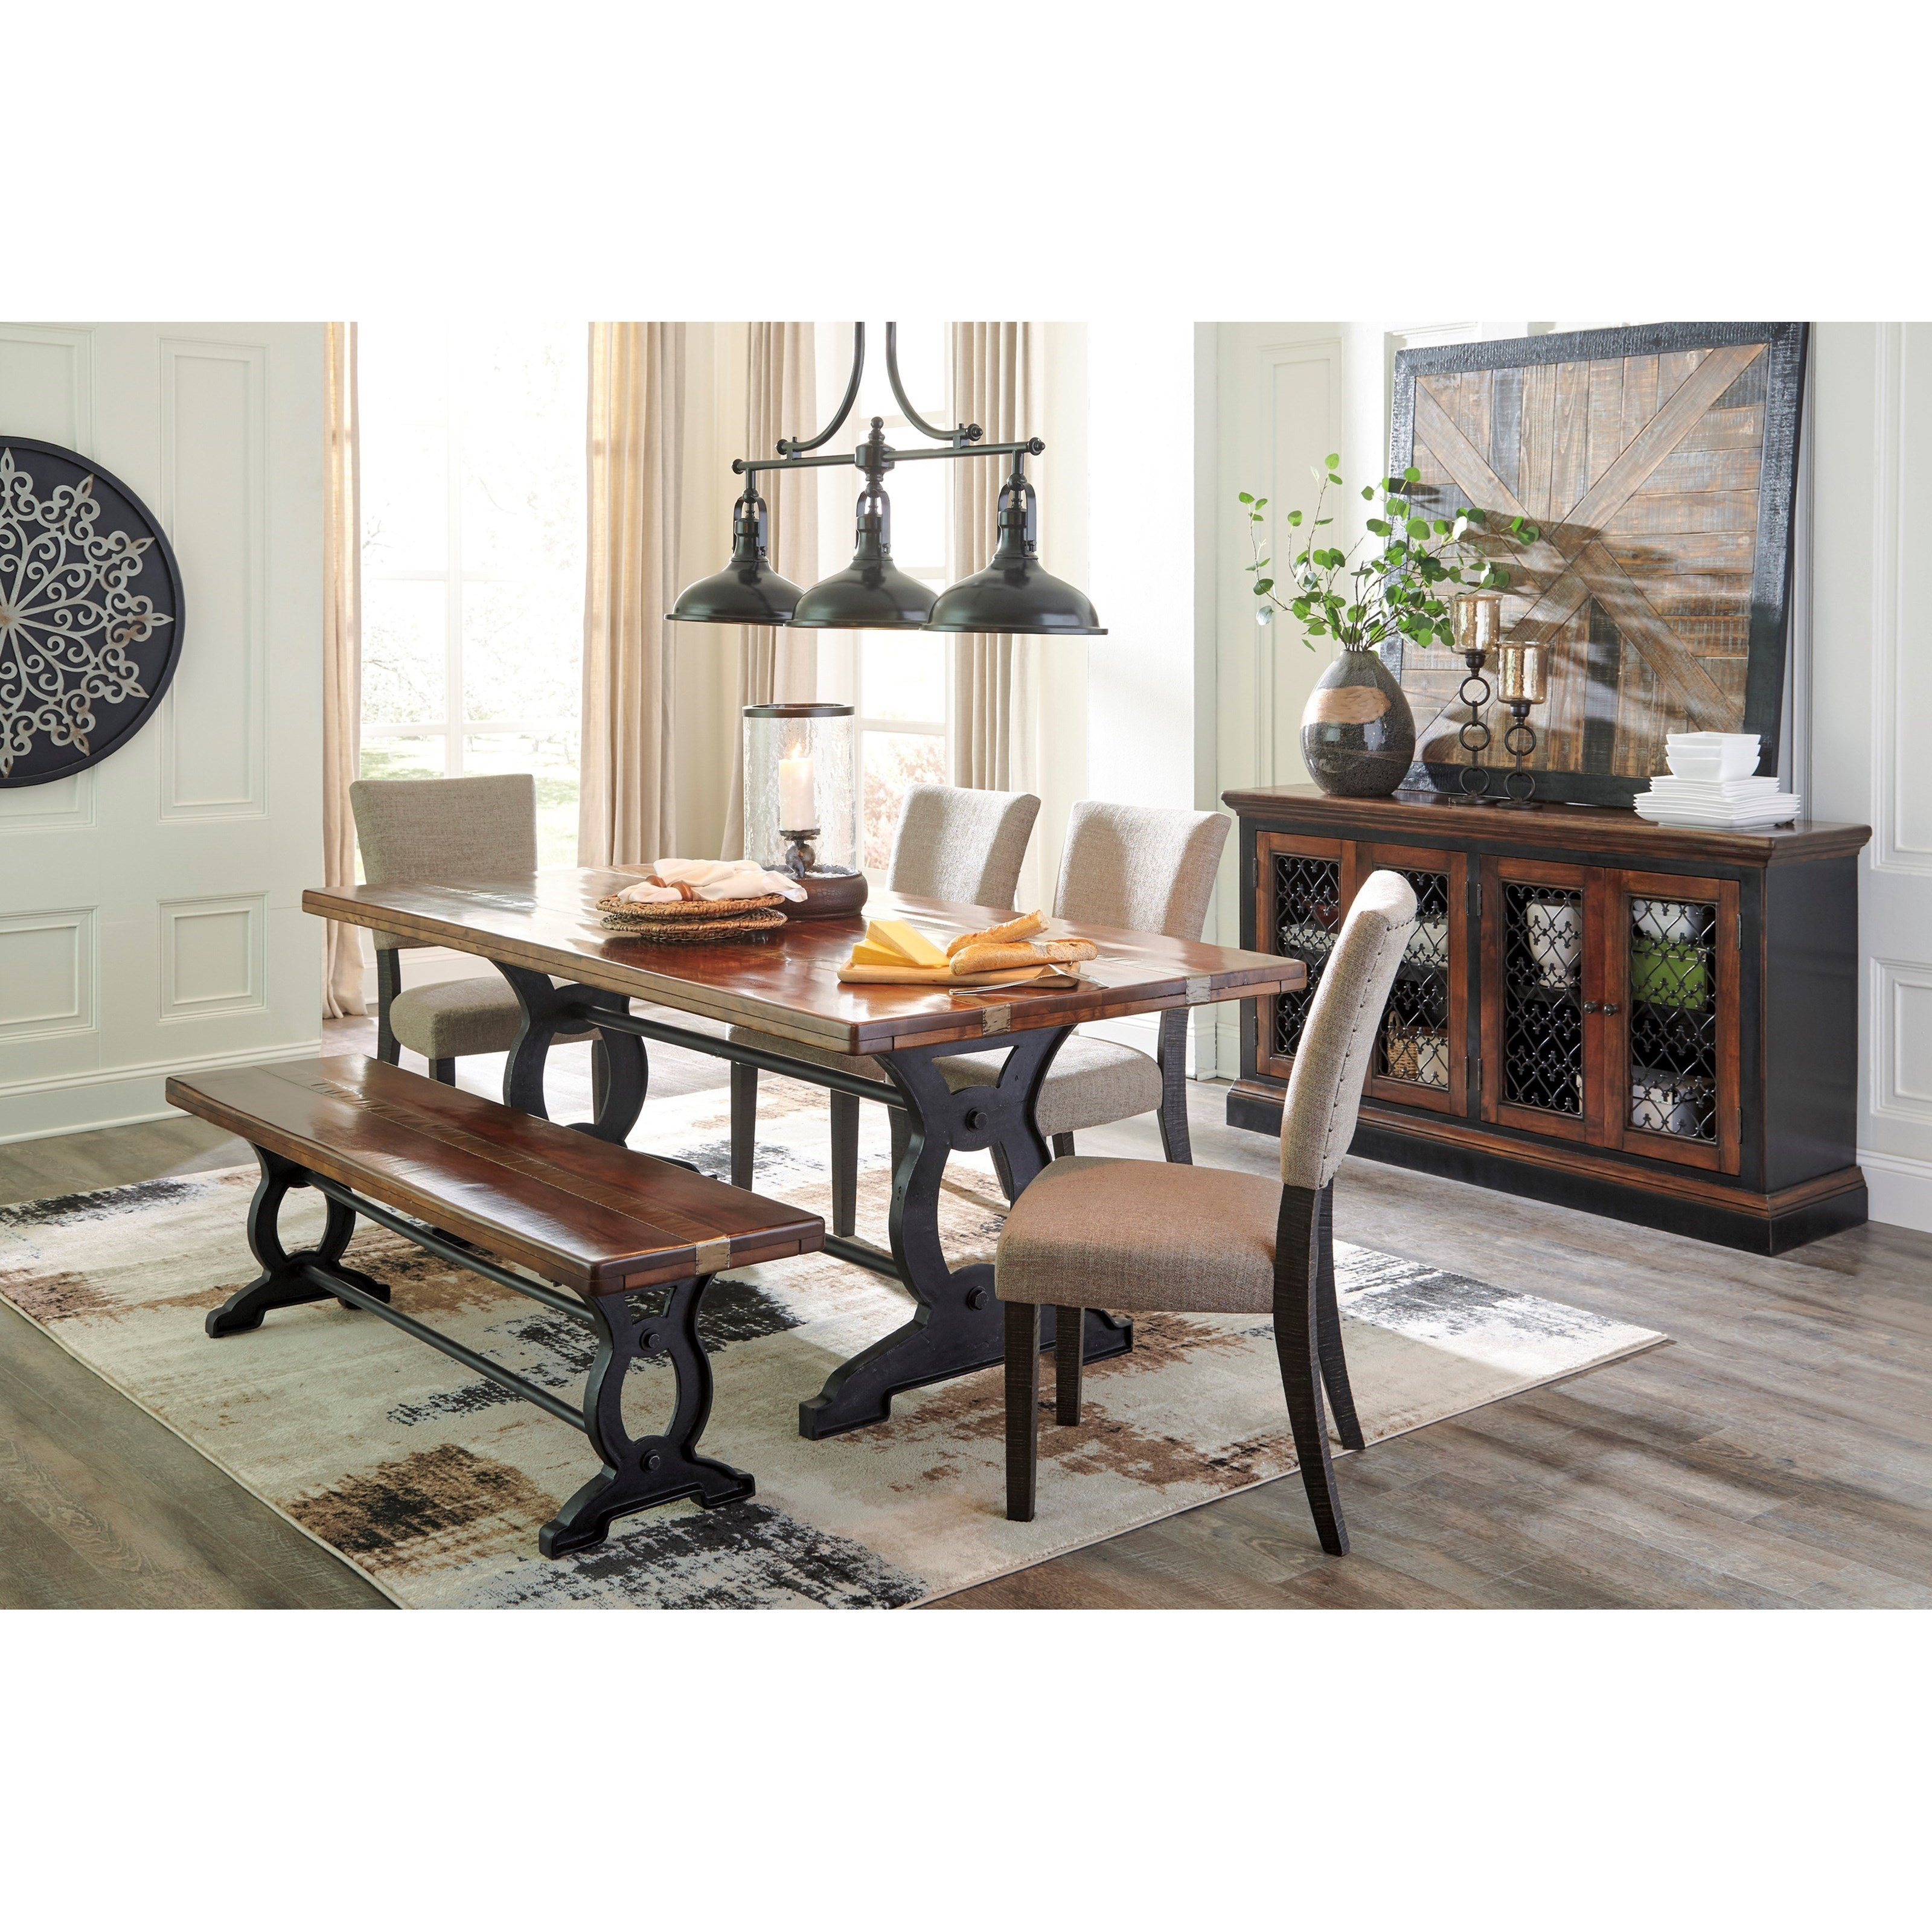 Signature design by ashley zurani casual dining room group for Casual dining room